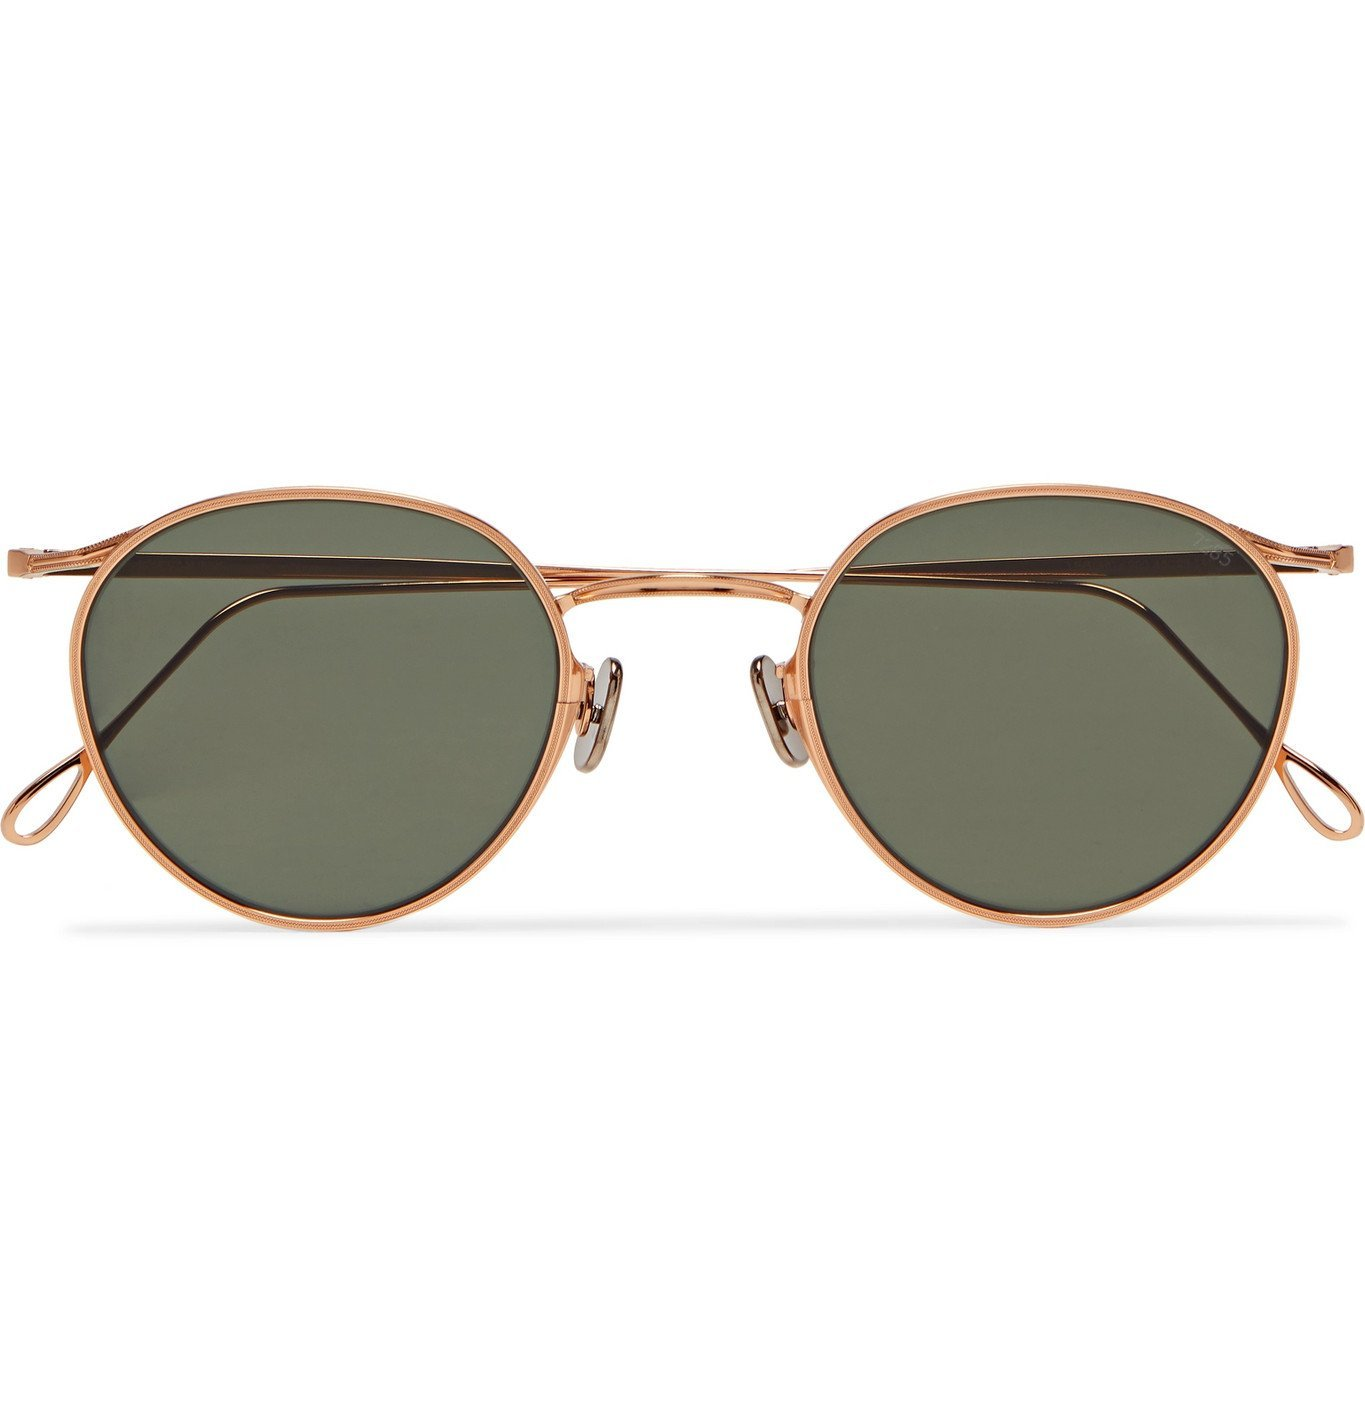 Photo: Eyevan 7285 - Round-Frame Rose Gold-Tone Sunglasses - Gold